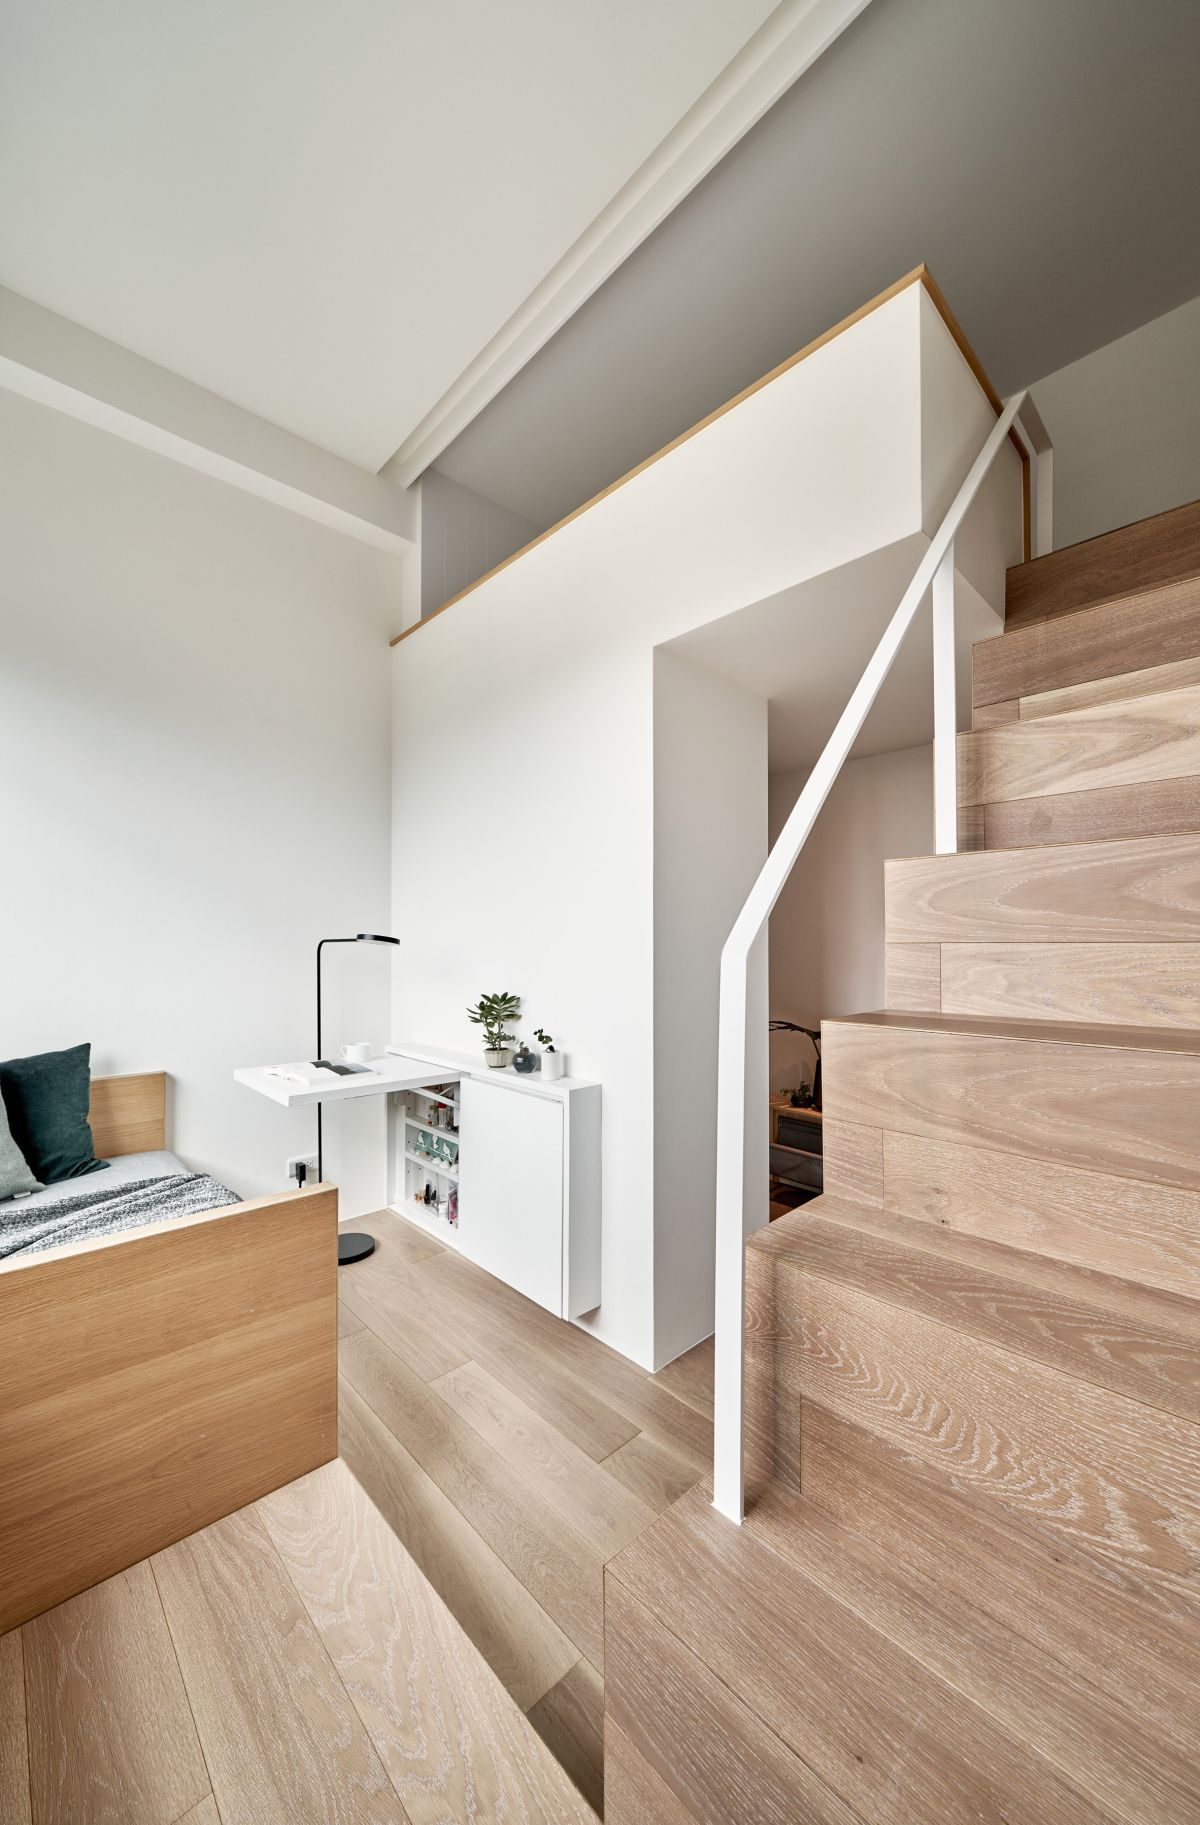 The living room is also the dressing and includes a built-in shoe cabinet and a fold-down desk